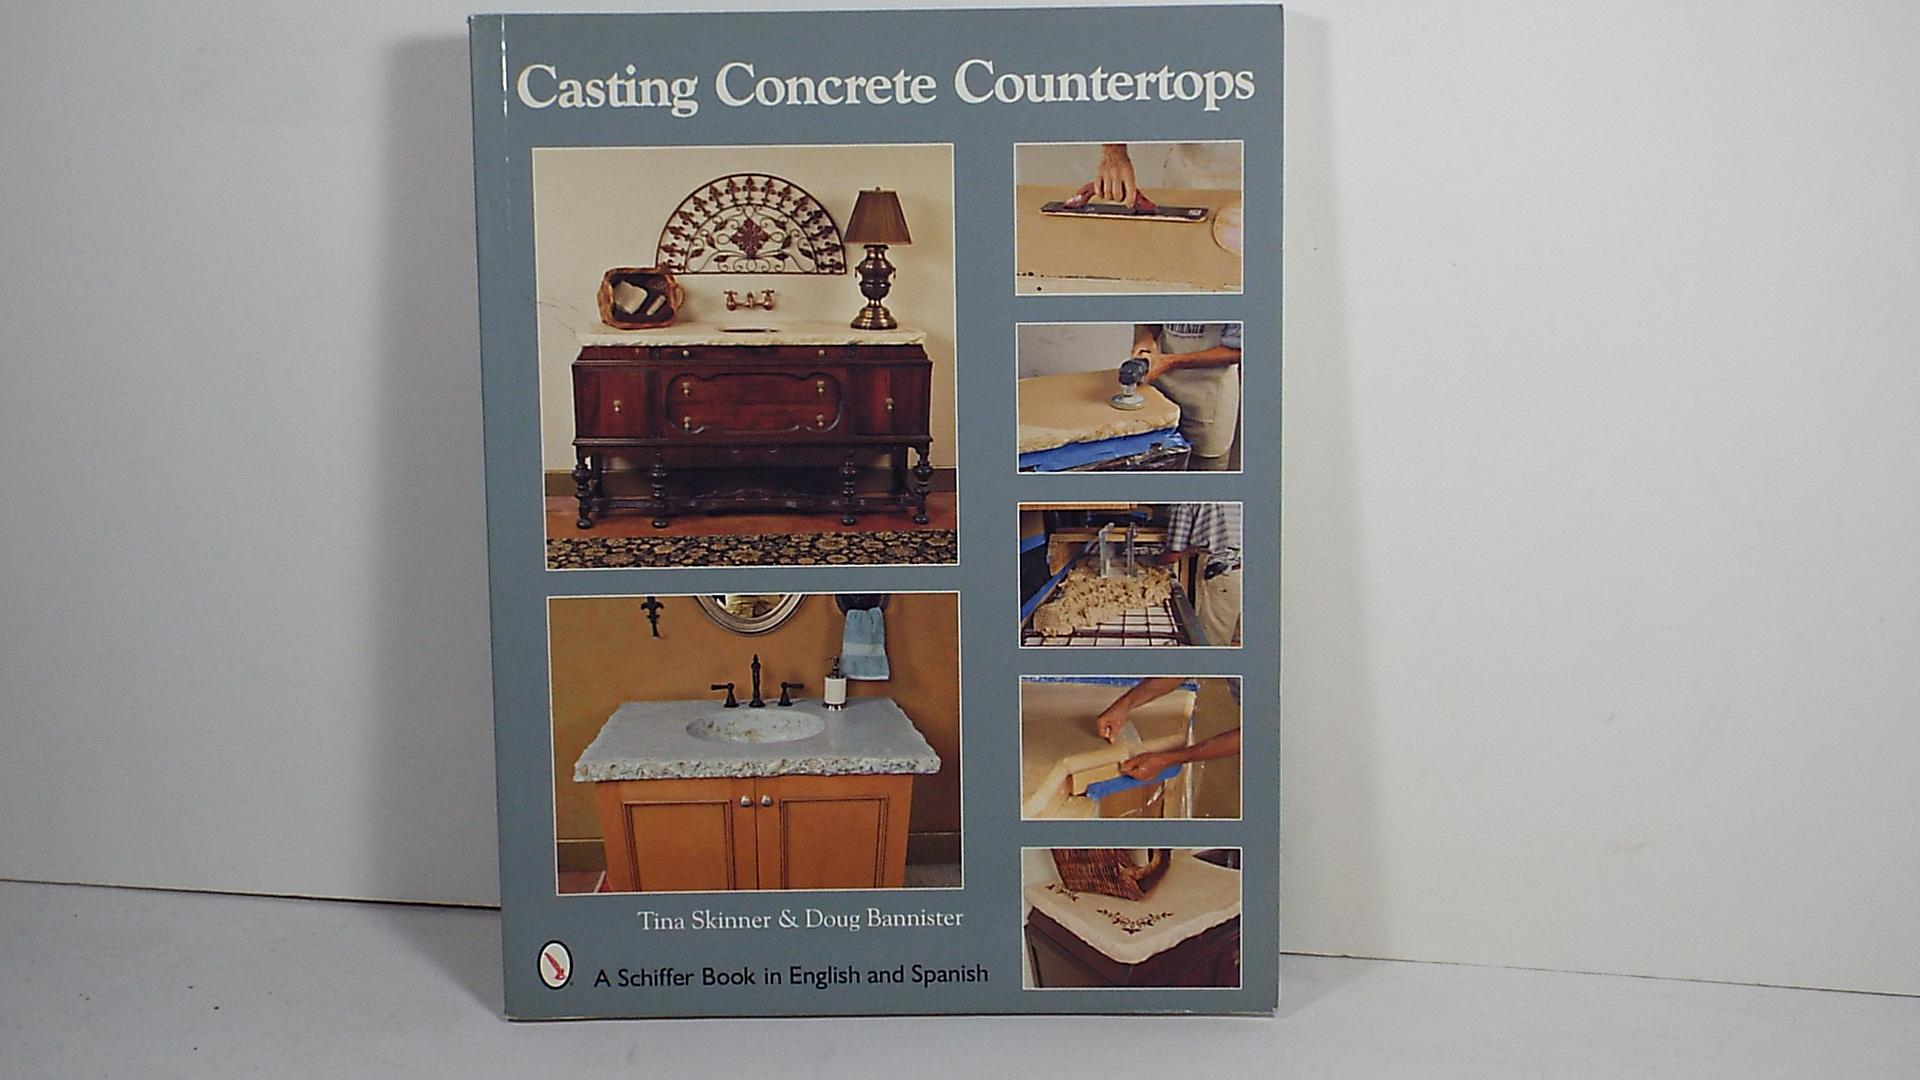 Concrete Countertops Book Casting Concrete Countertops